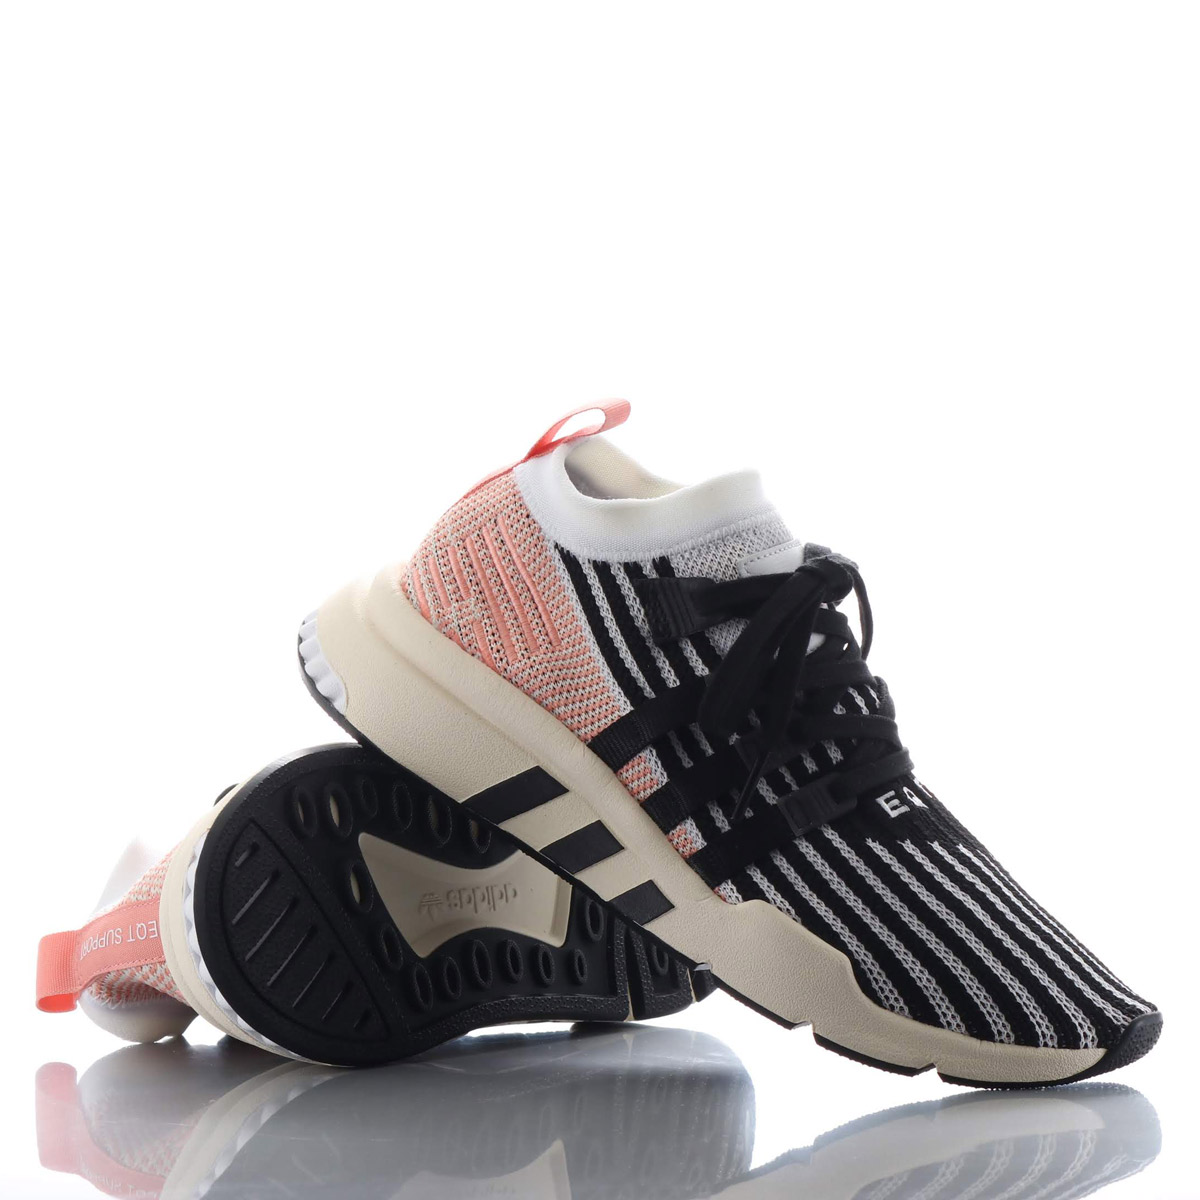 info for 34863 3313d adidas Originals EQT SUPPORT MID ADV PK (Adidas originals E cue tea support  MID ADV PK) RUNNING WHITE/CORE BLACK/TRACE PINK 18FA-I